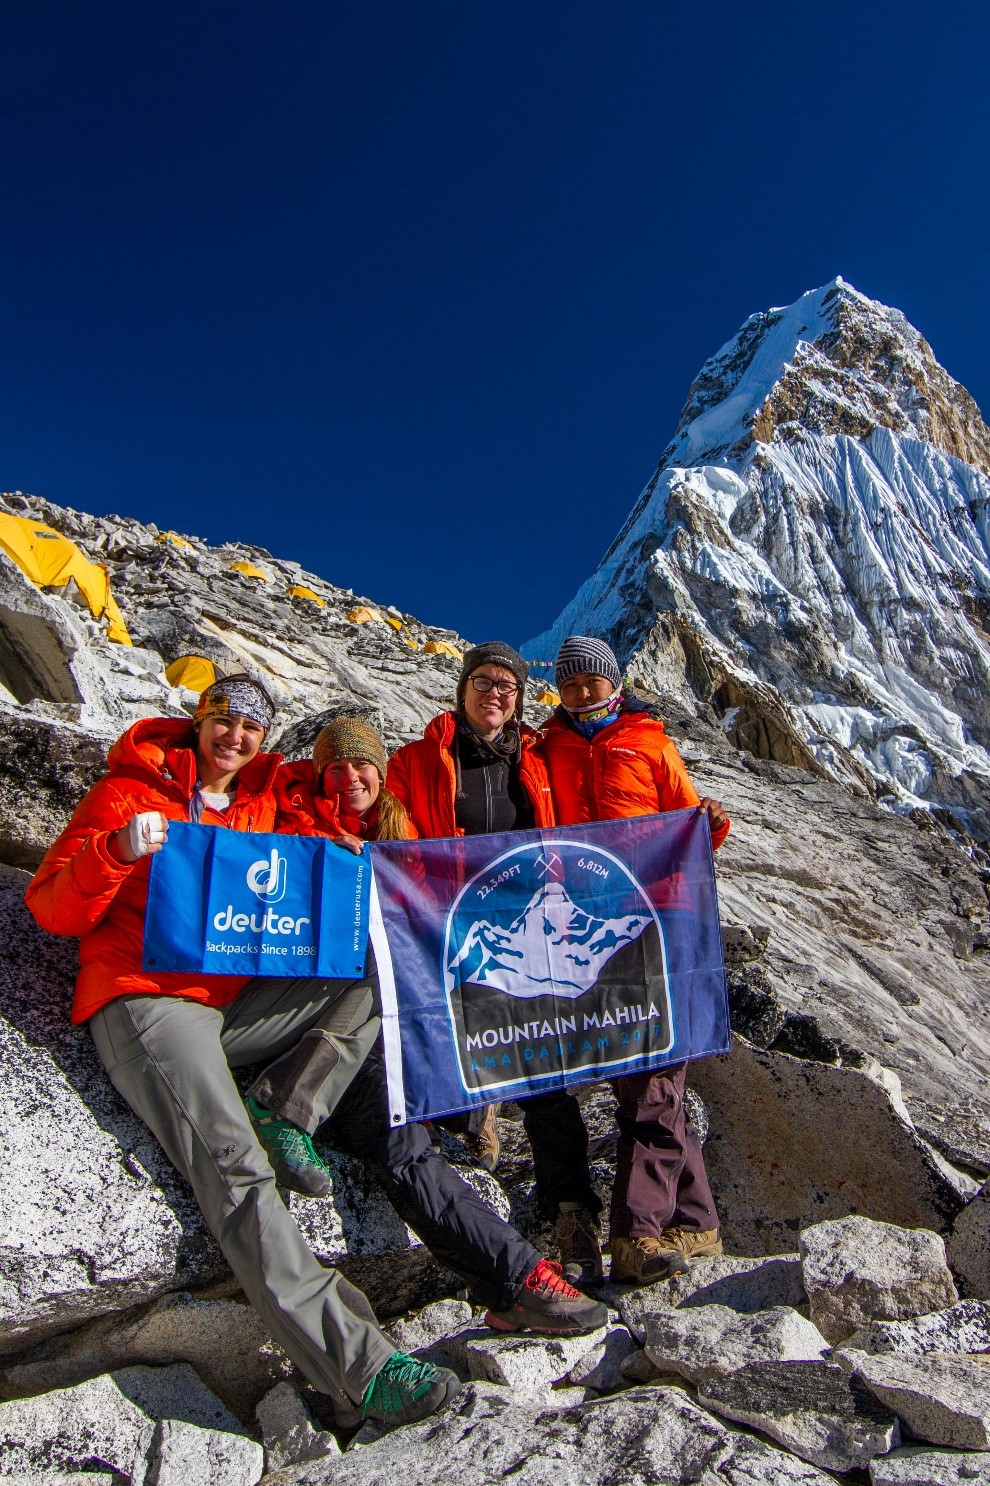 The full Mountain Mahila team at Camp 1 on Ama Dablam: Kim, Ida, Tammy and Phurba. (Photo credit: Ida Vincent